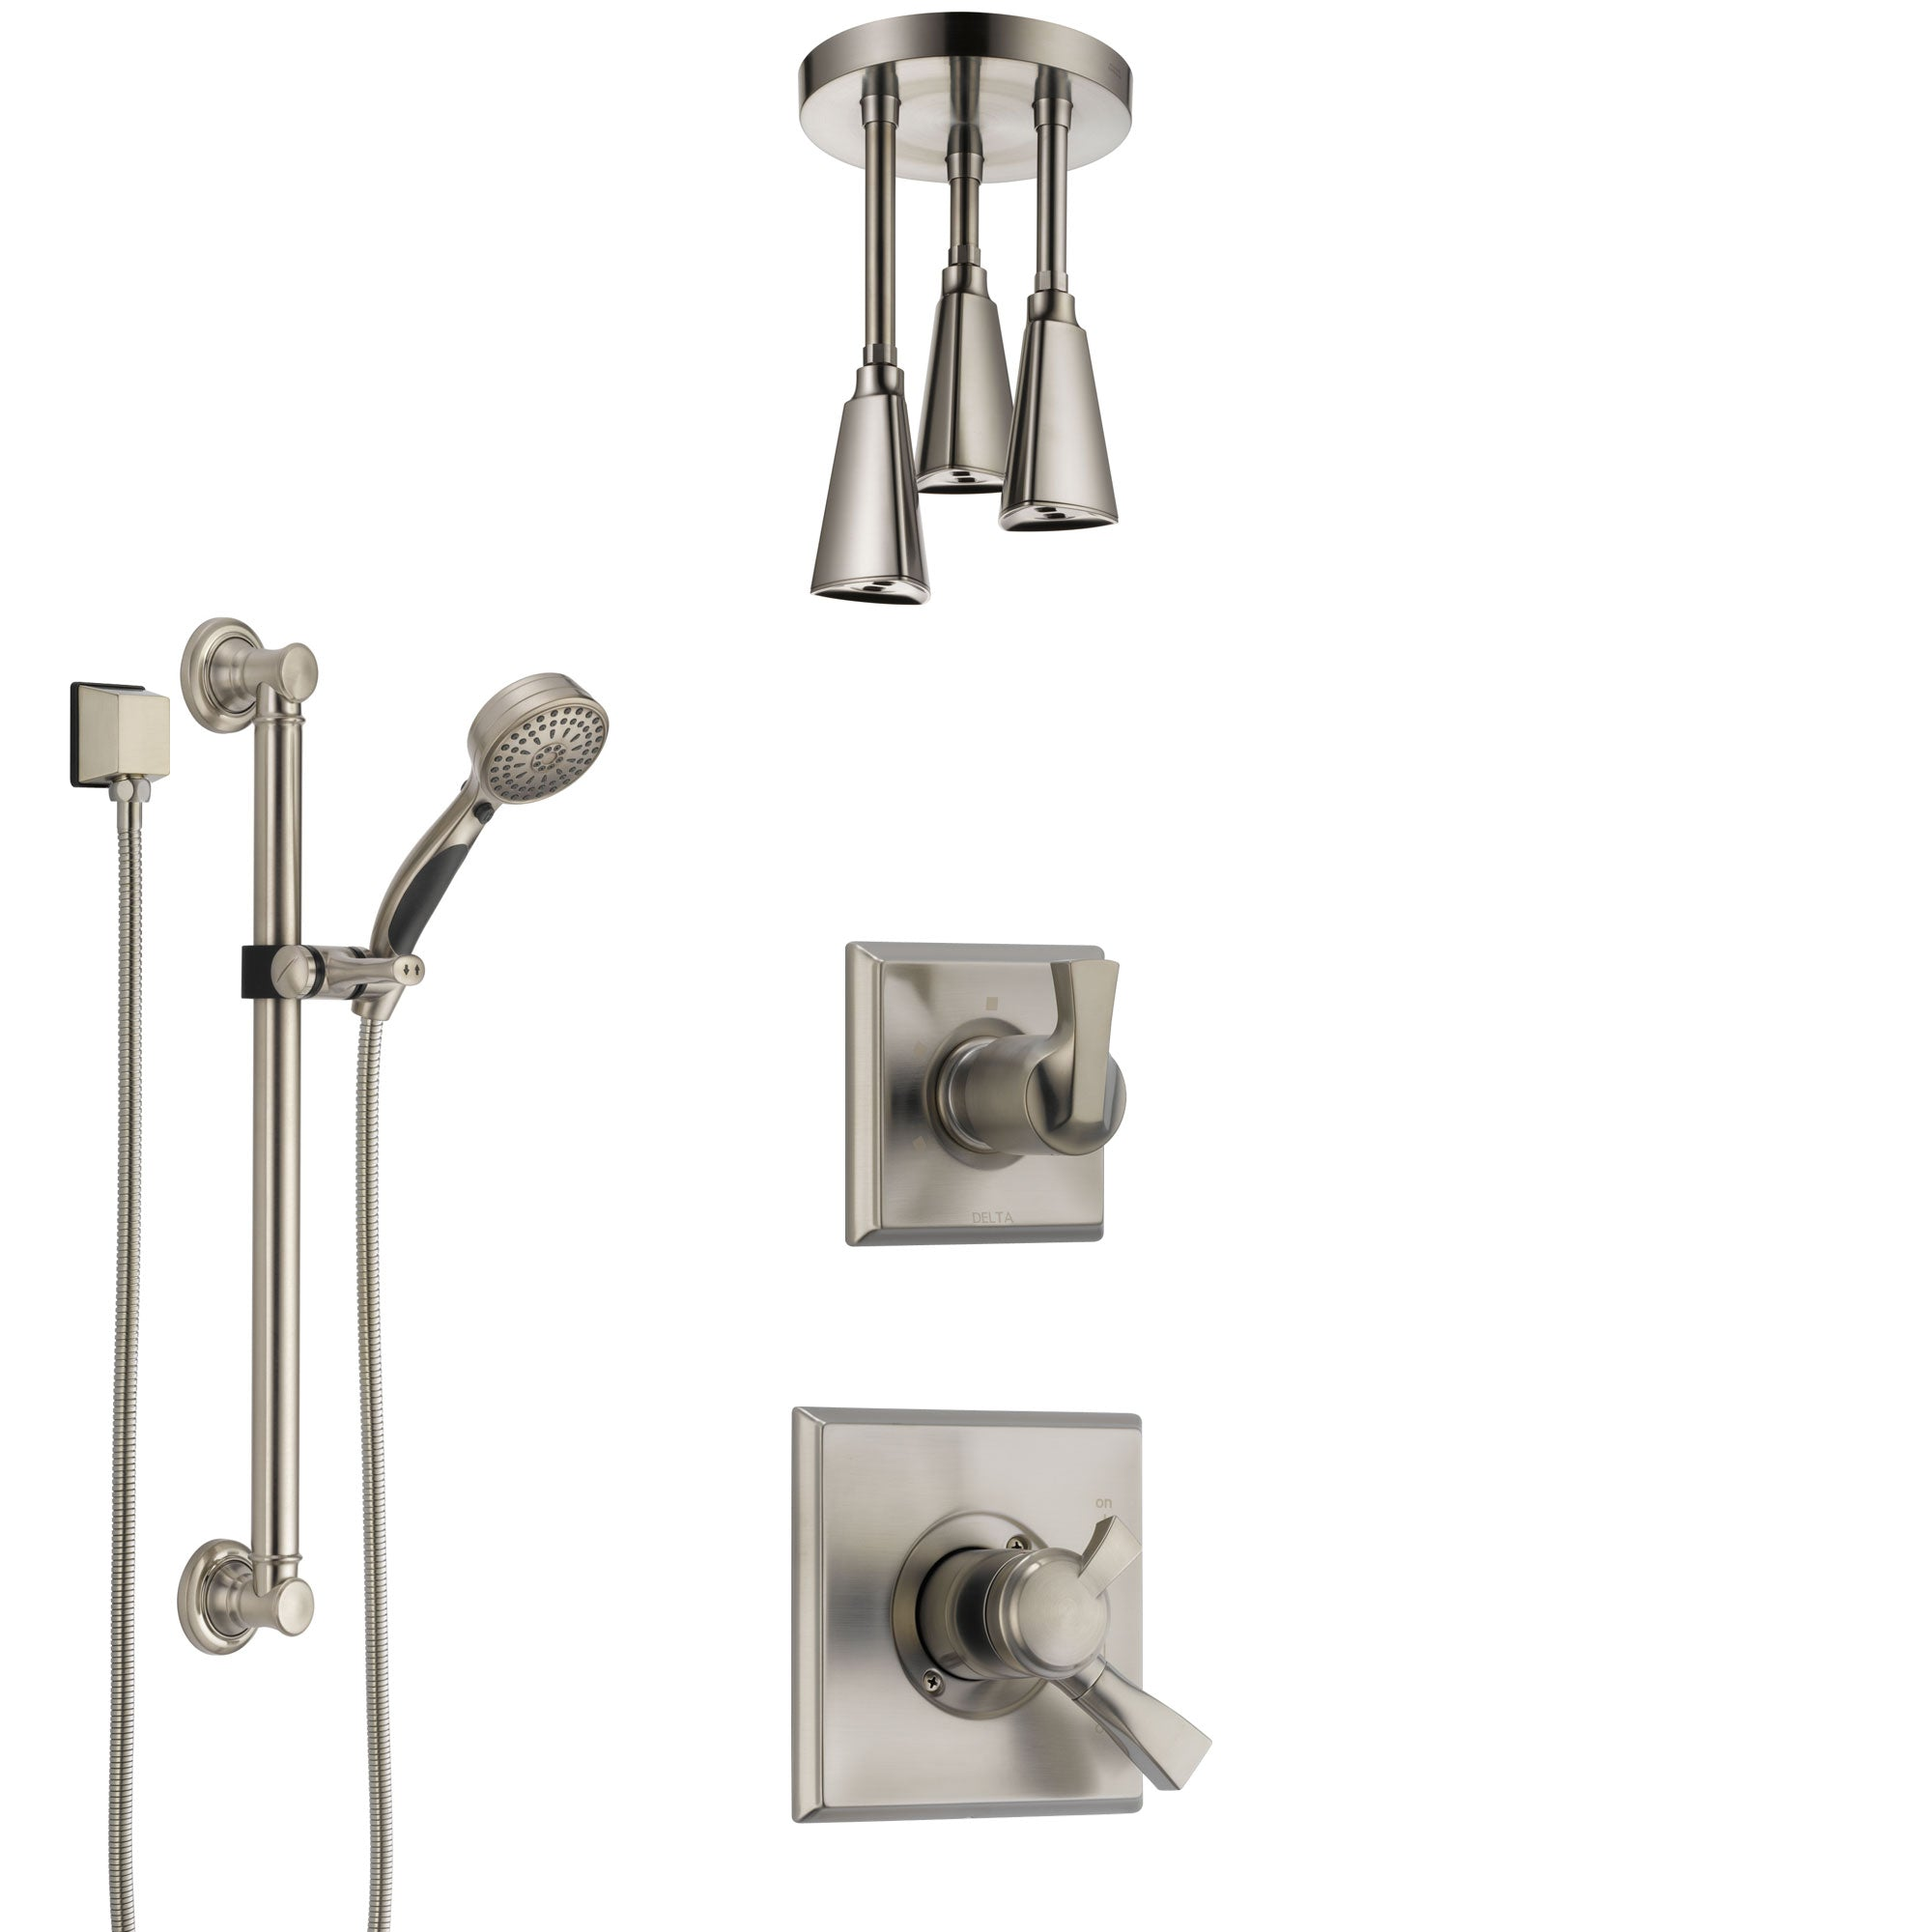 Delta Dryden Dual Control Handle Stainless Steel Finish Shower System, Diverter, Ceiling Mount Showerhead, and Hand Shower with Grab Bar SS1751SS3